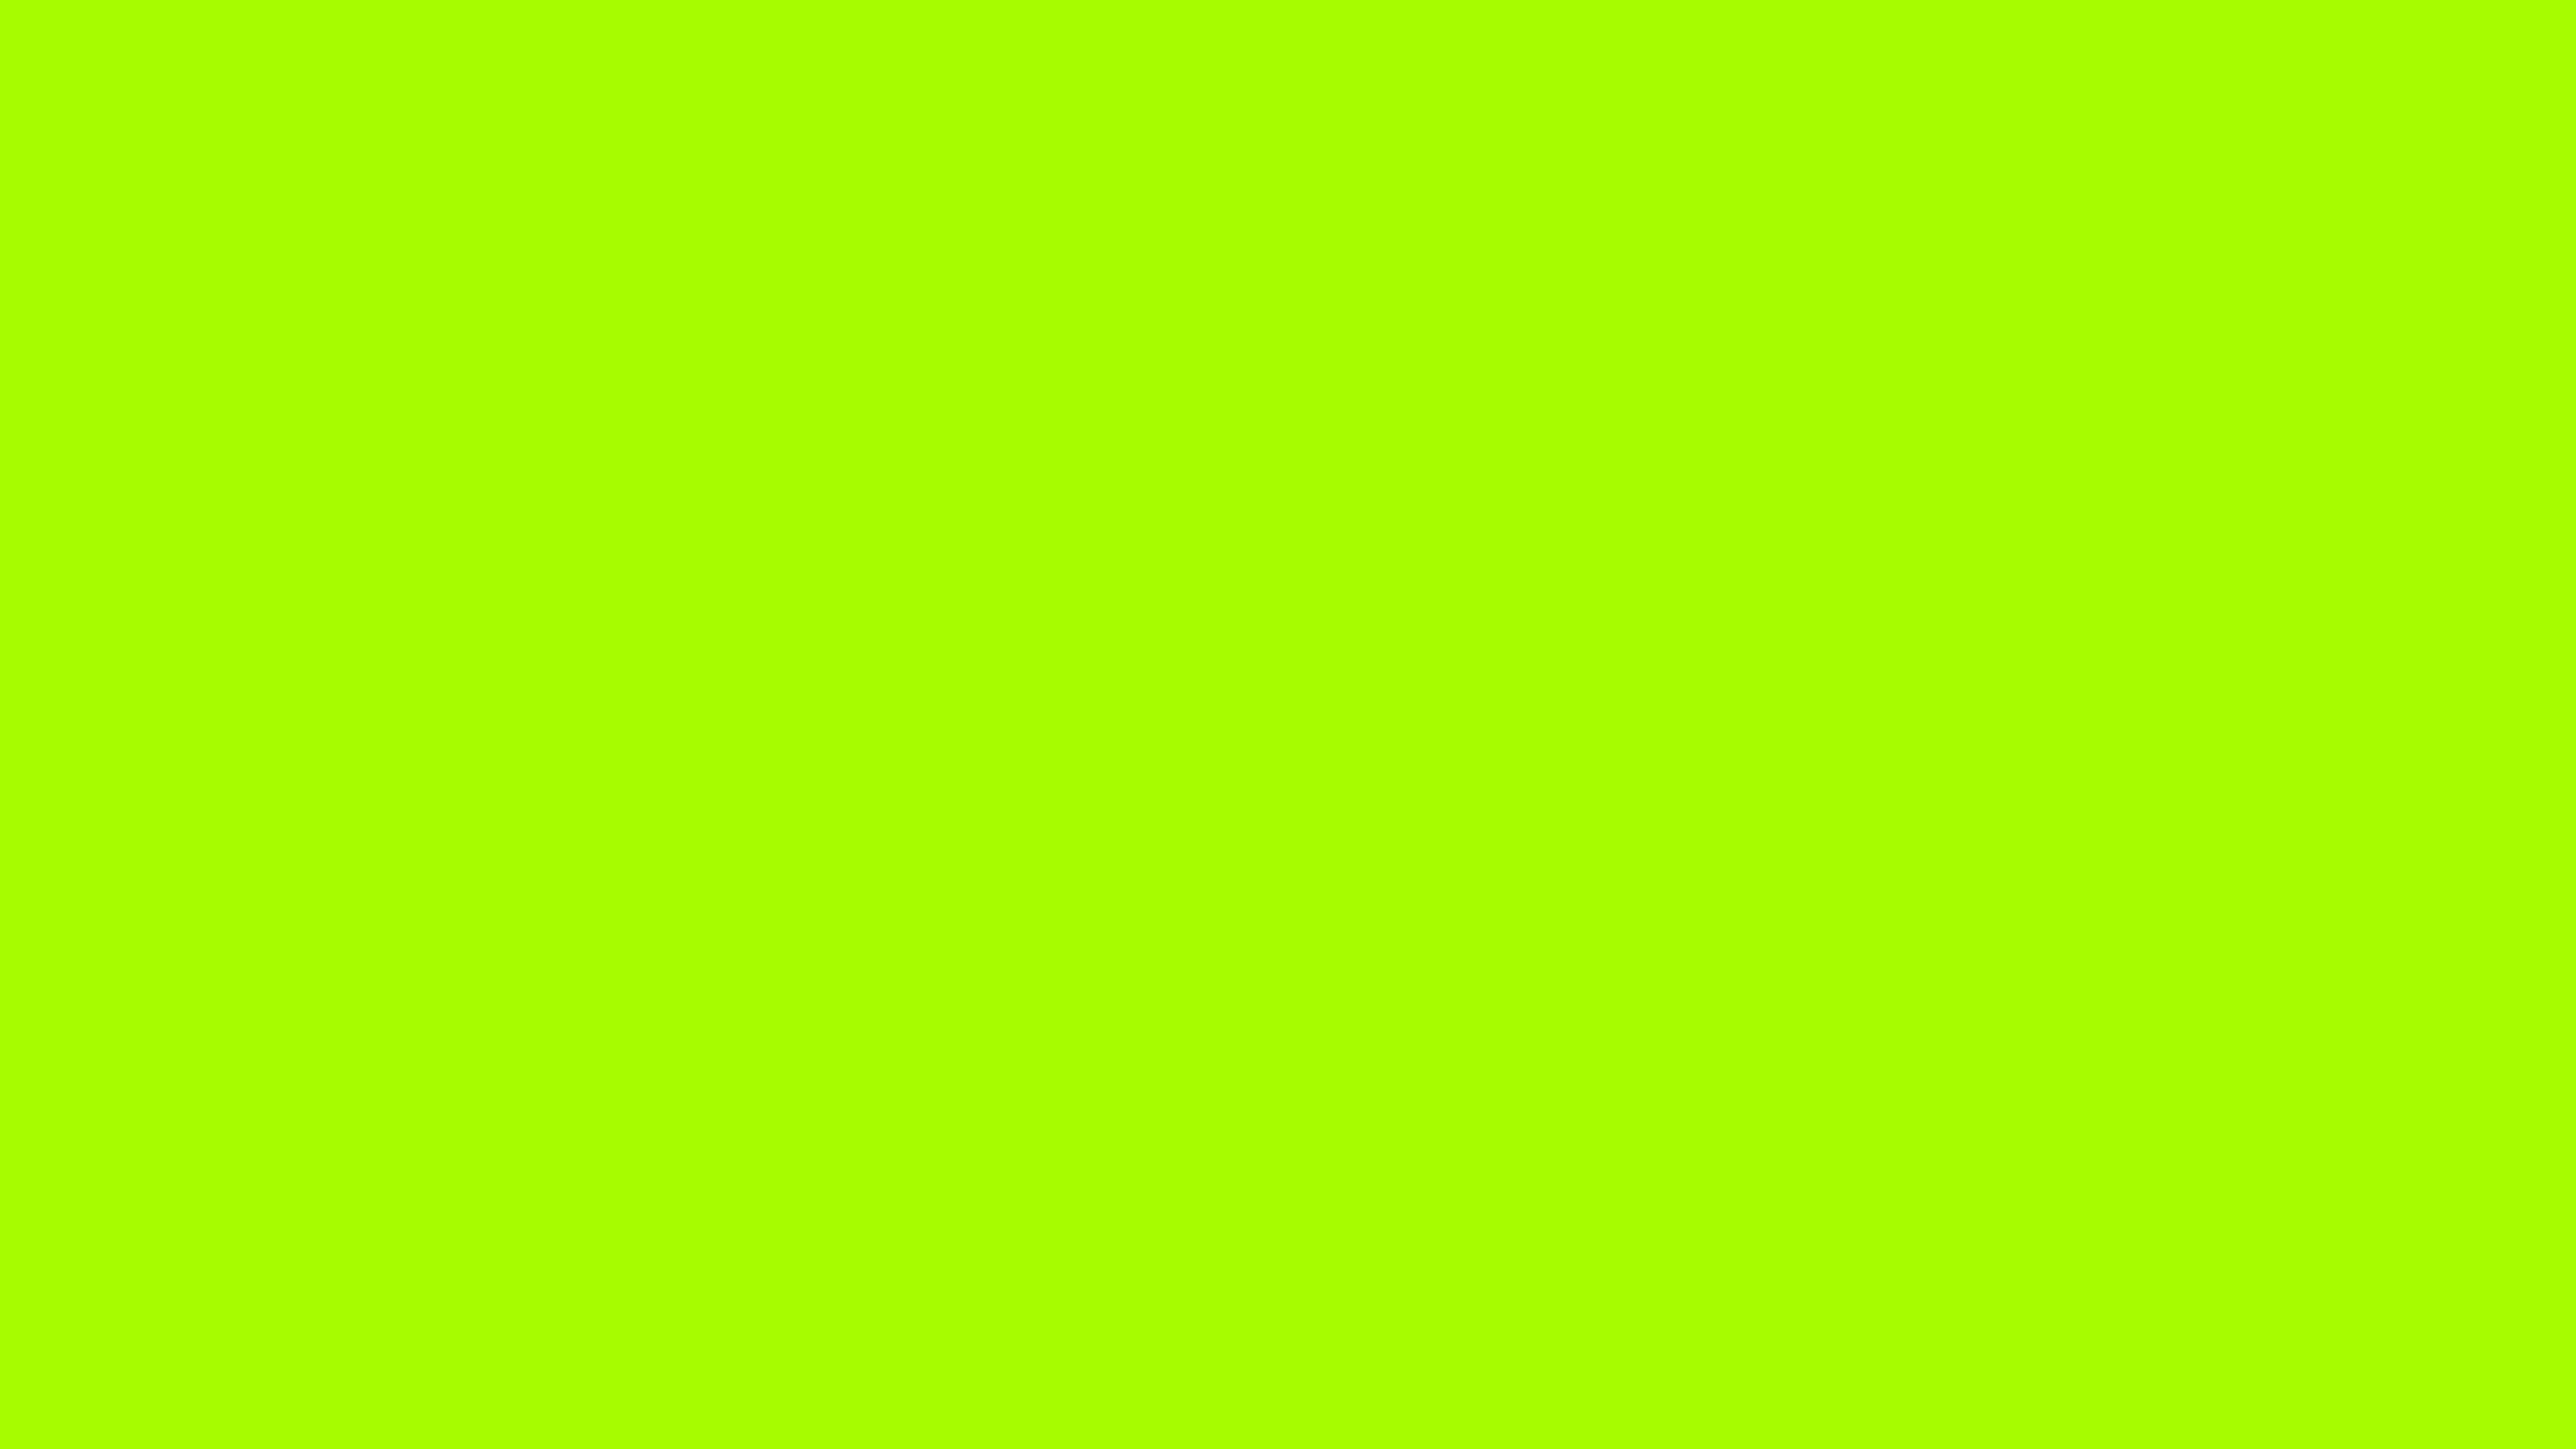 3840x2160 Spring Bud Solid Color Background